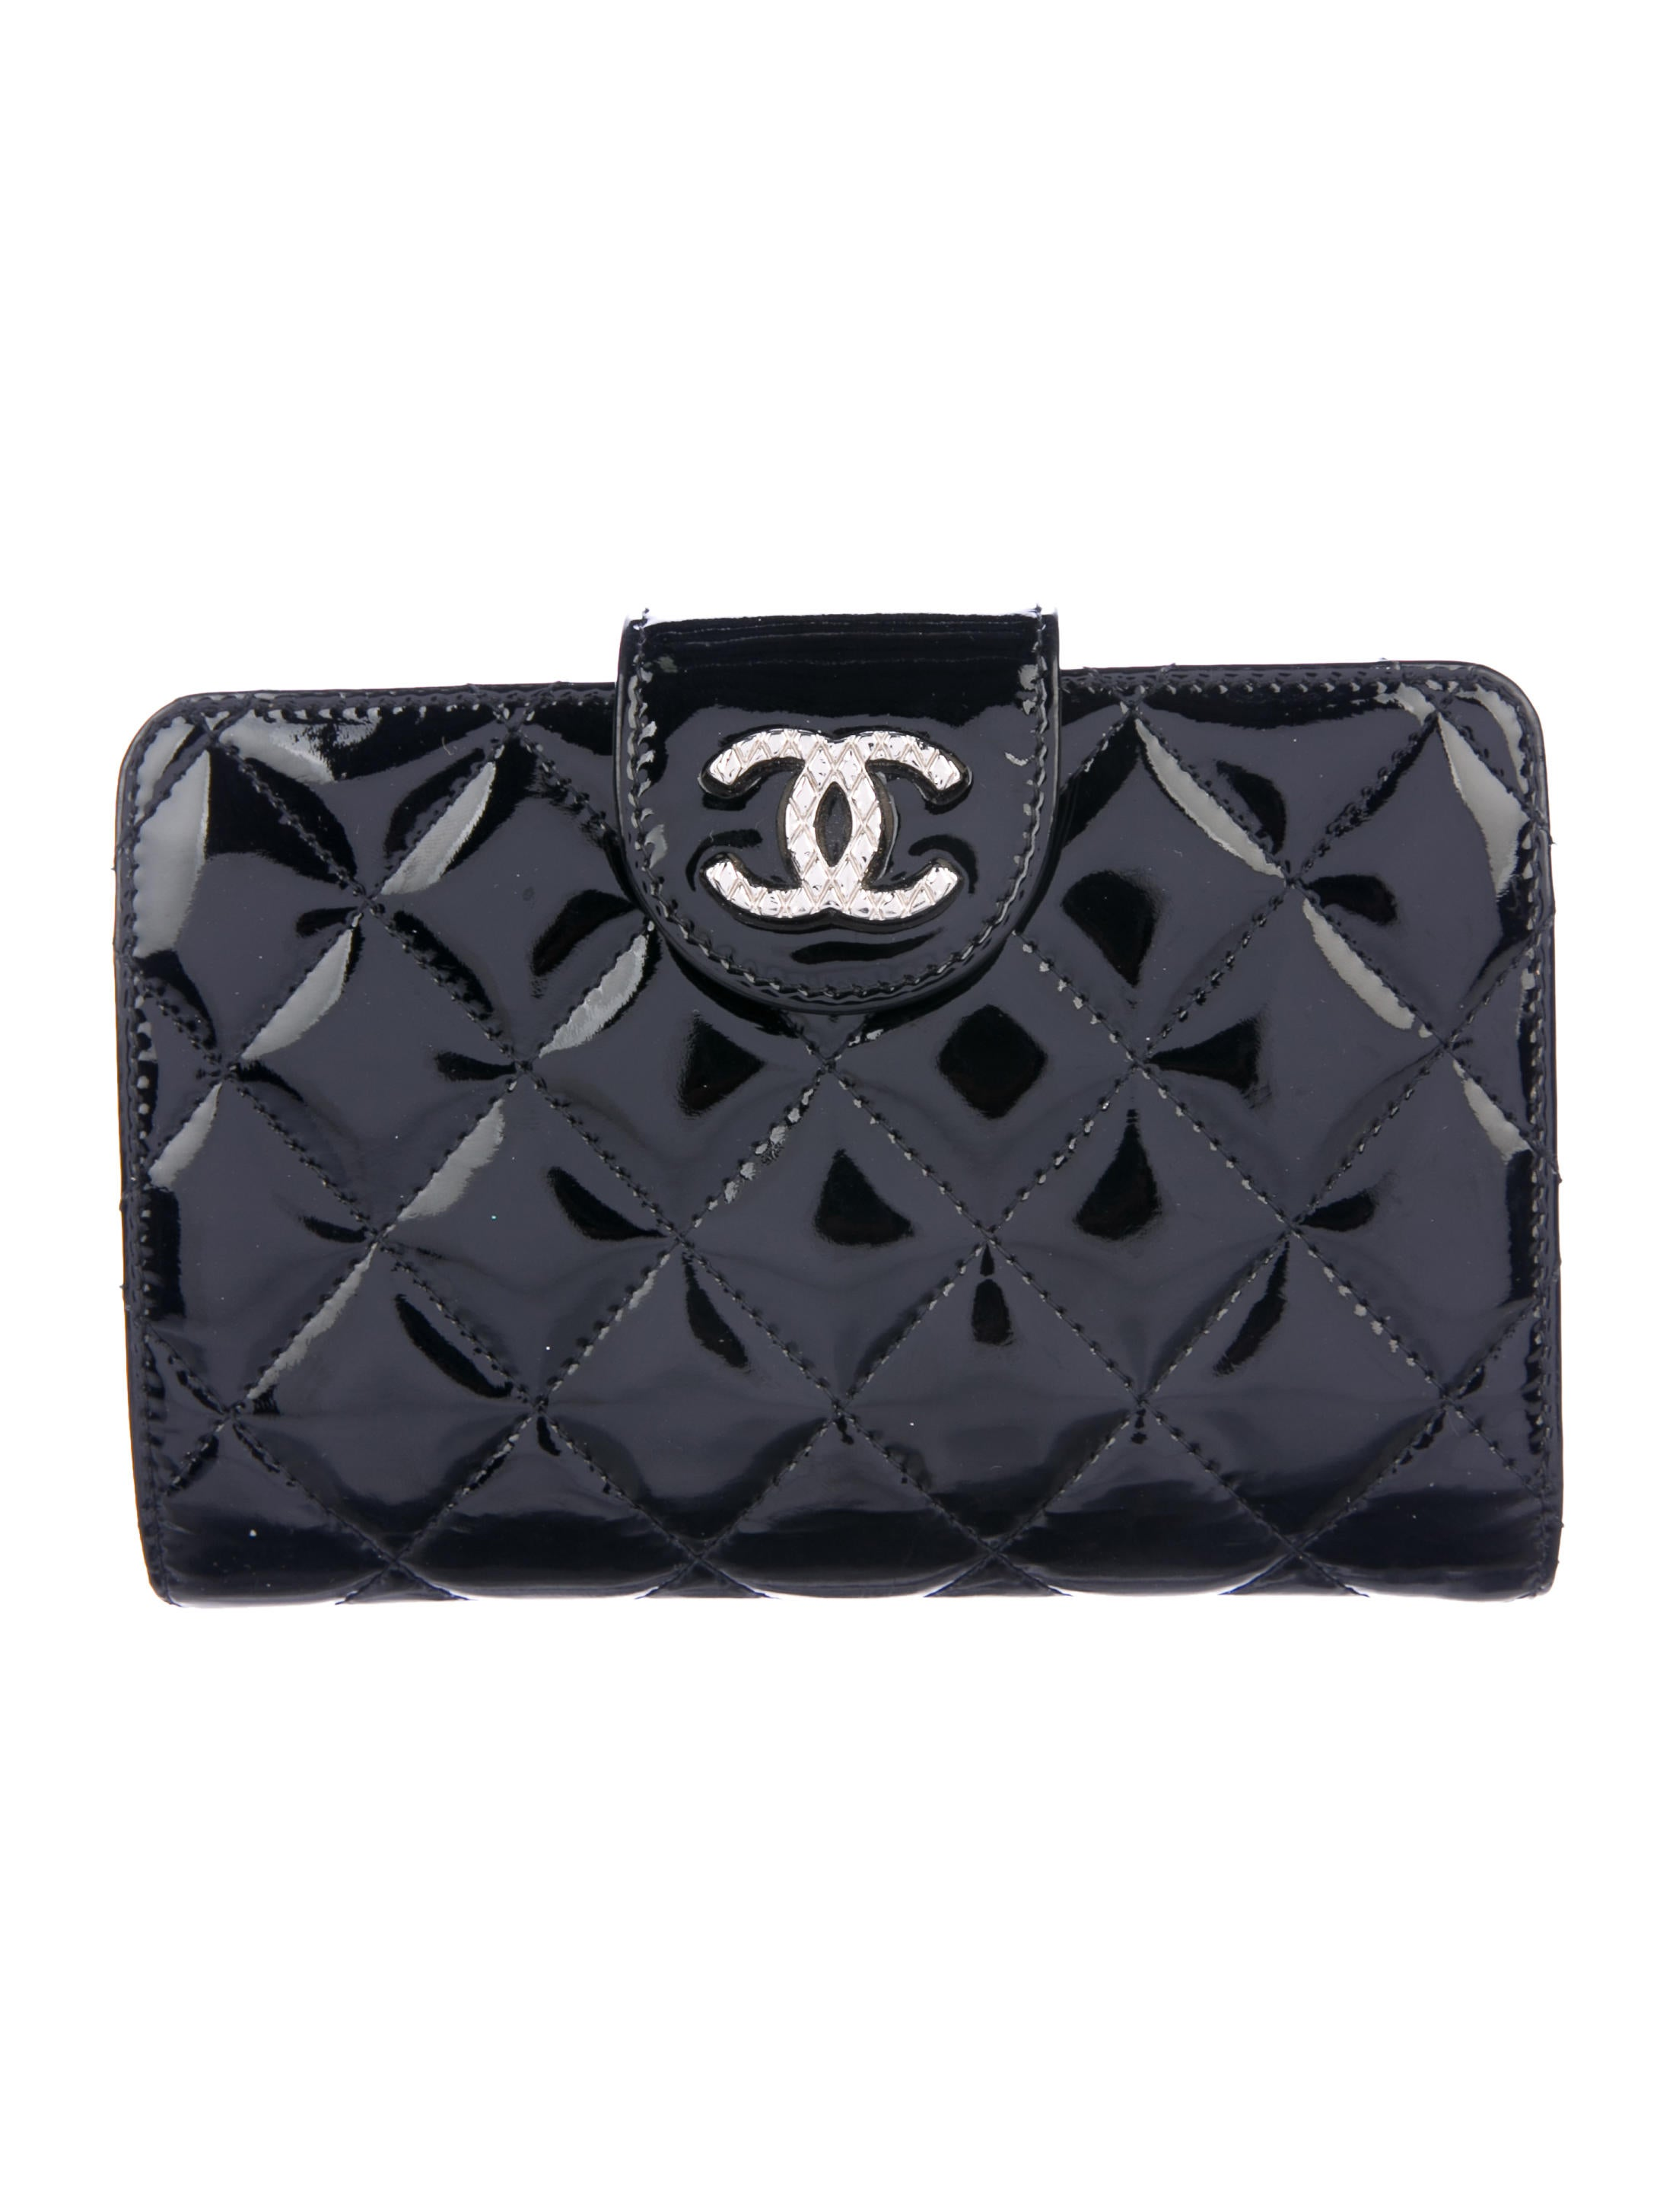 23ab81c4655b Chanel Brilliant French Purse Wallet - Accessories - CHA269437 | The  RealReal